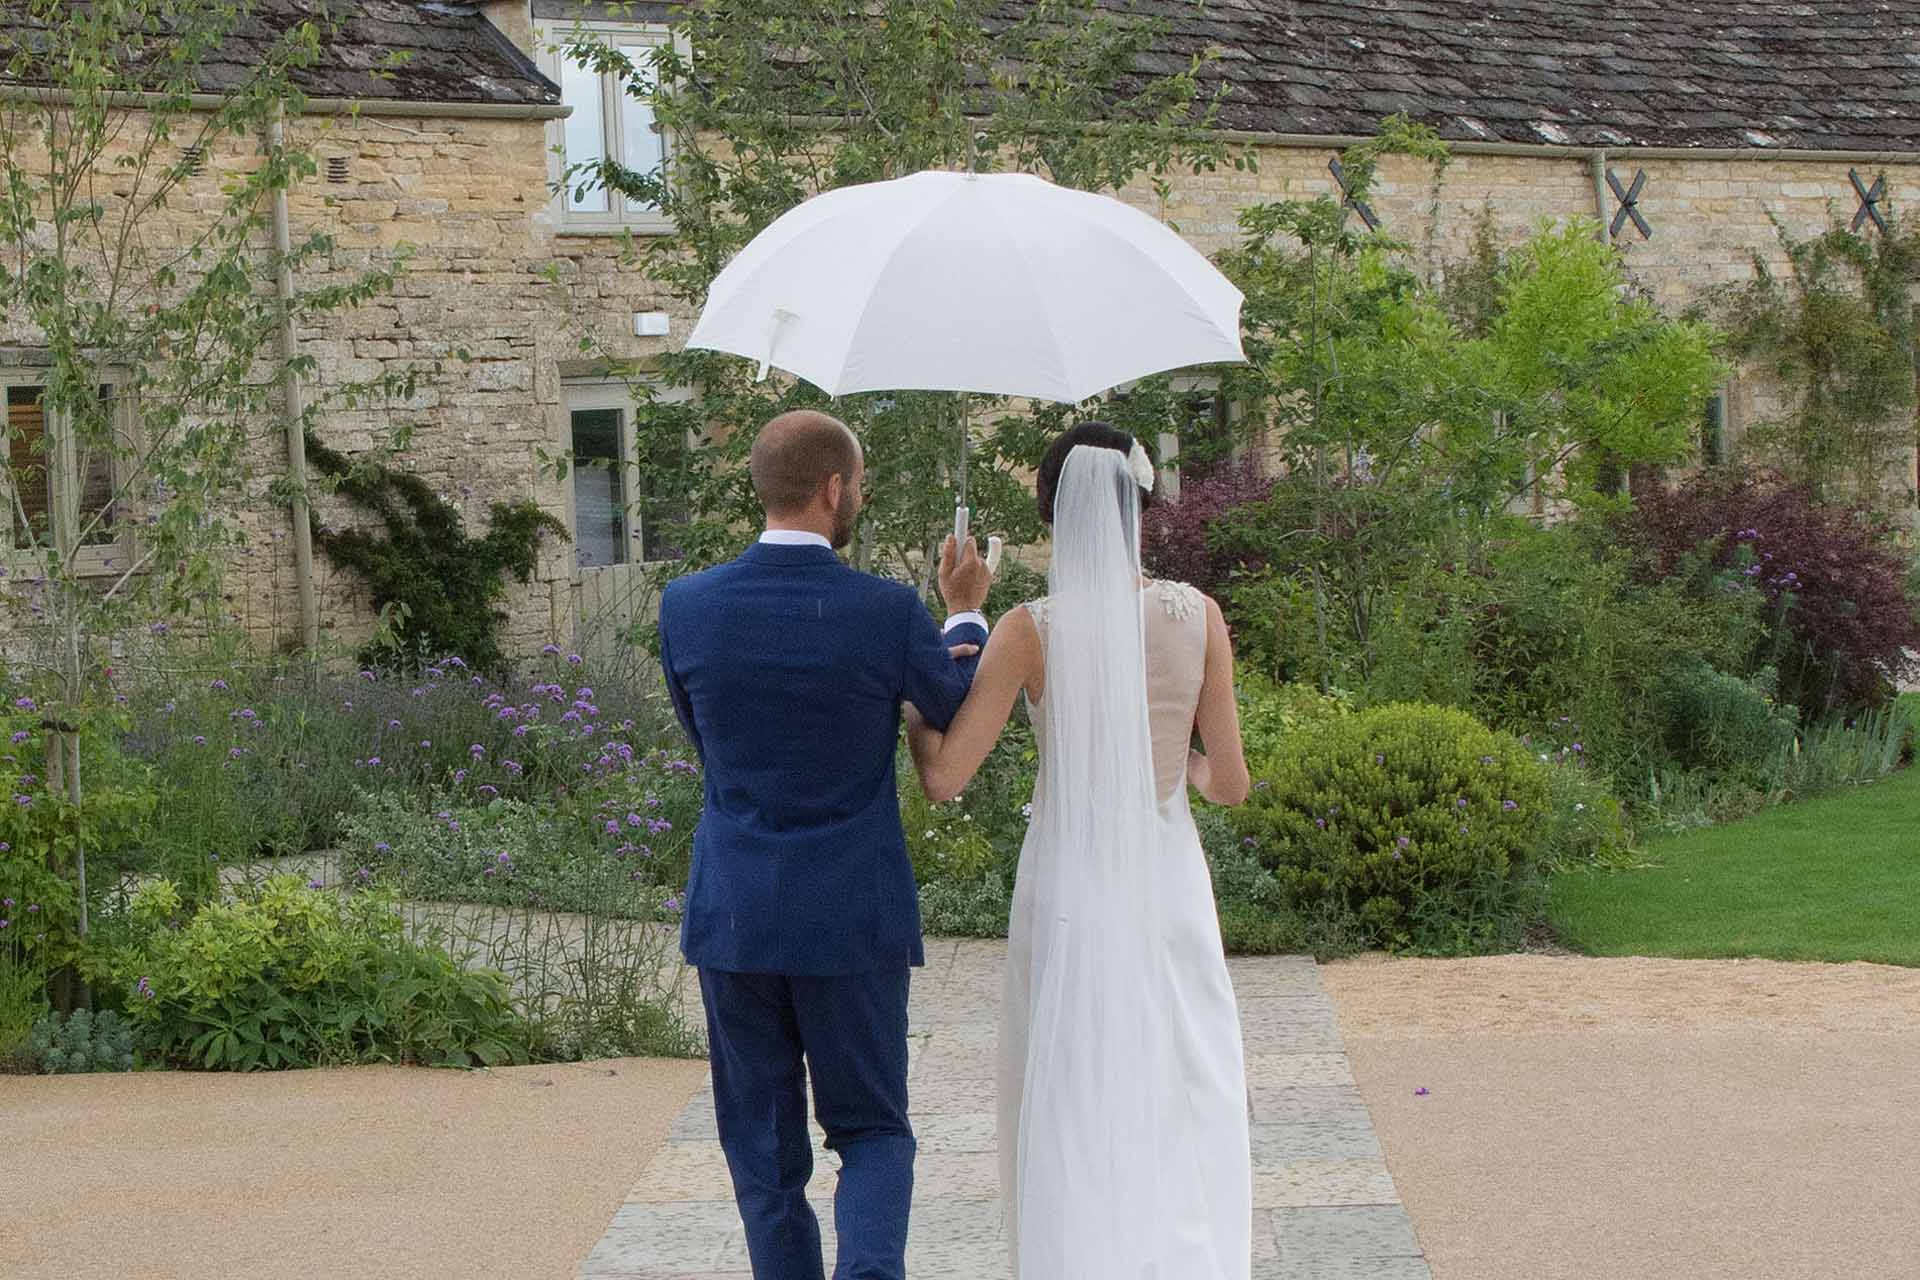 Bride and groom holding up a white umbrella